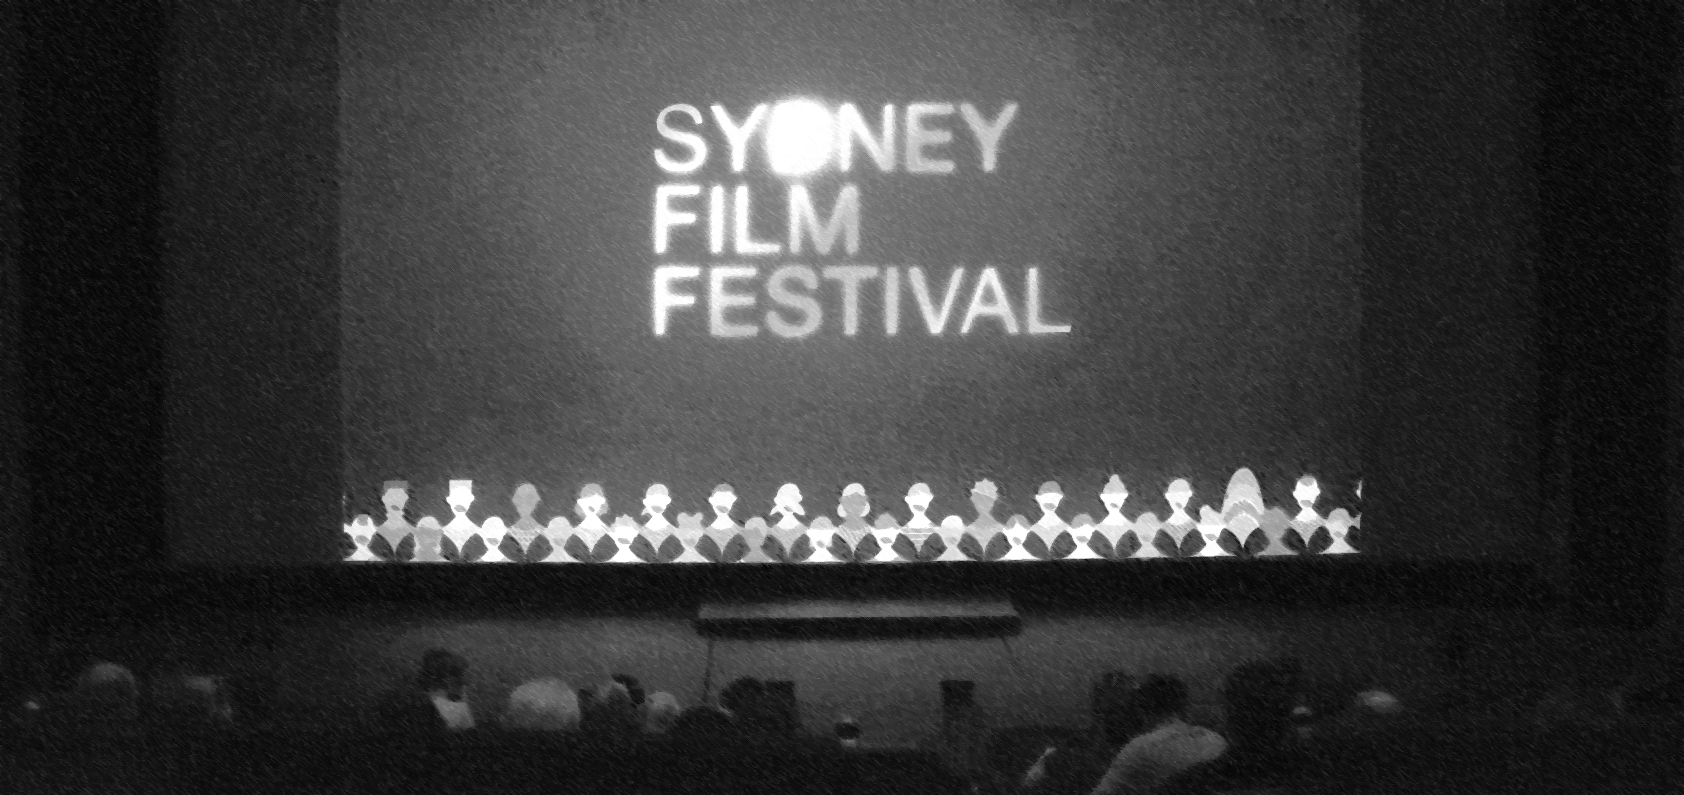 Taking the Film Out of Sydney Film Festival